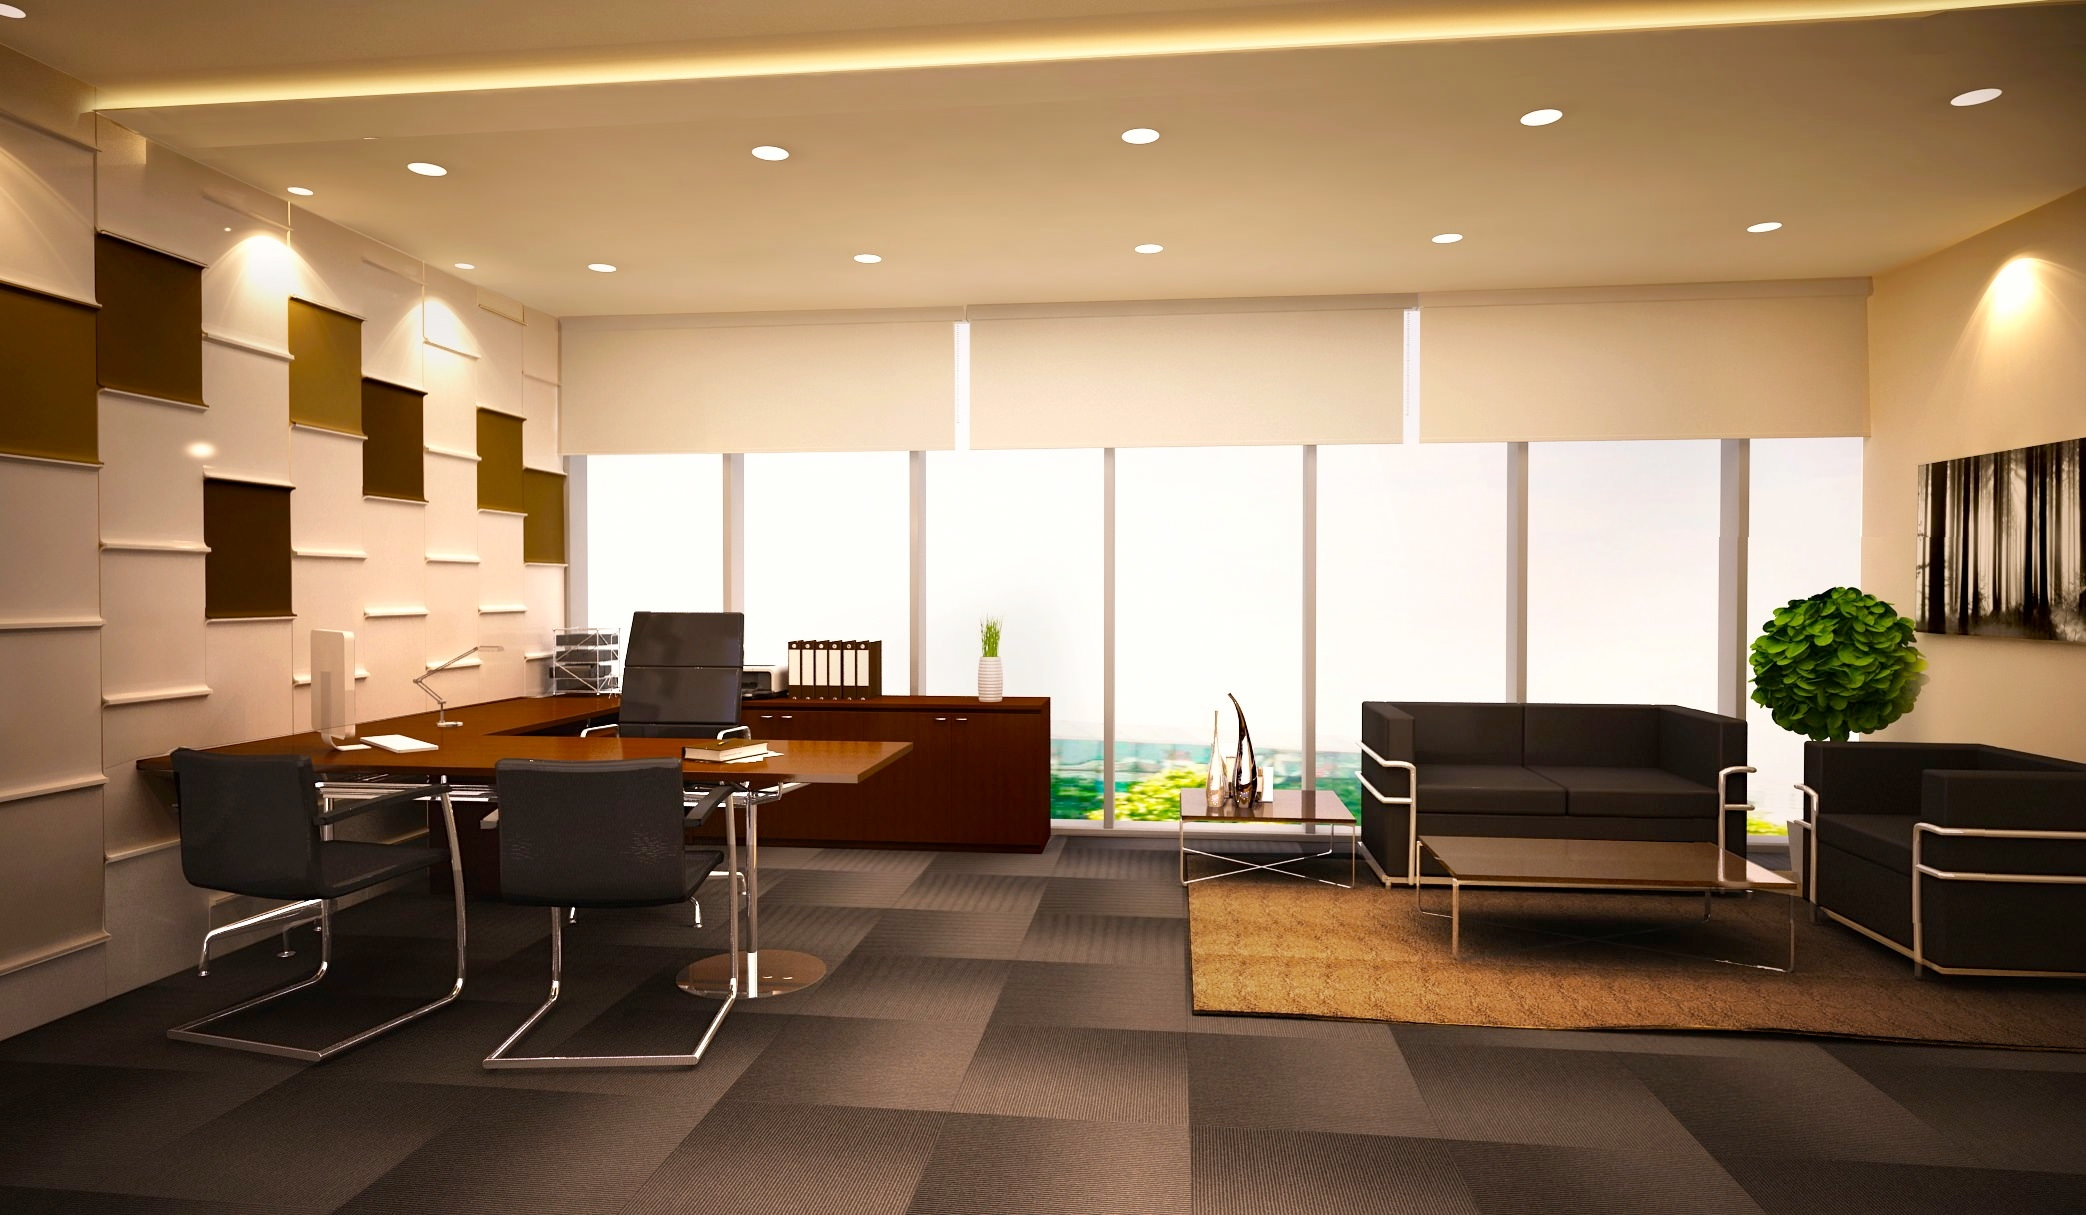 19 minimalist office designs decorating ideas design for Office room decoration ideas